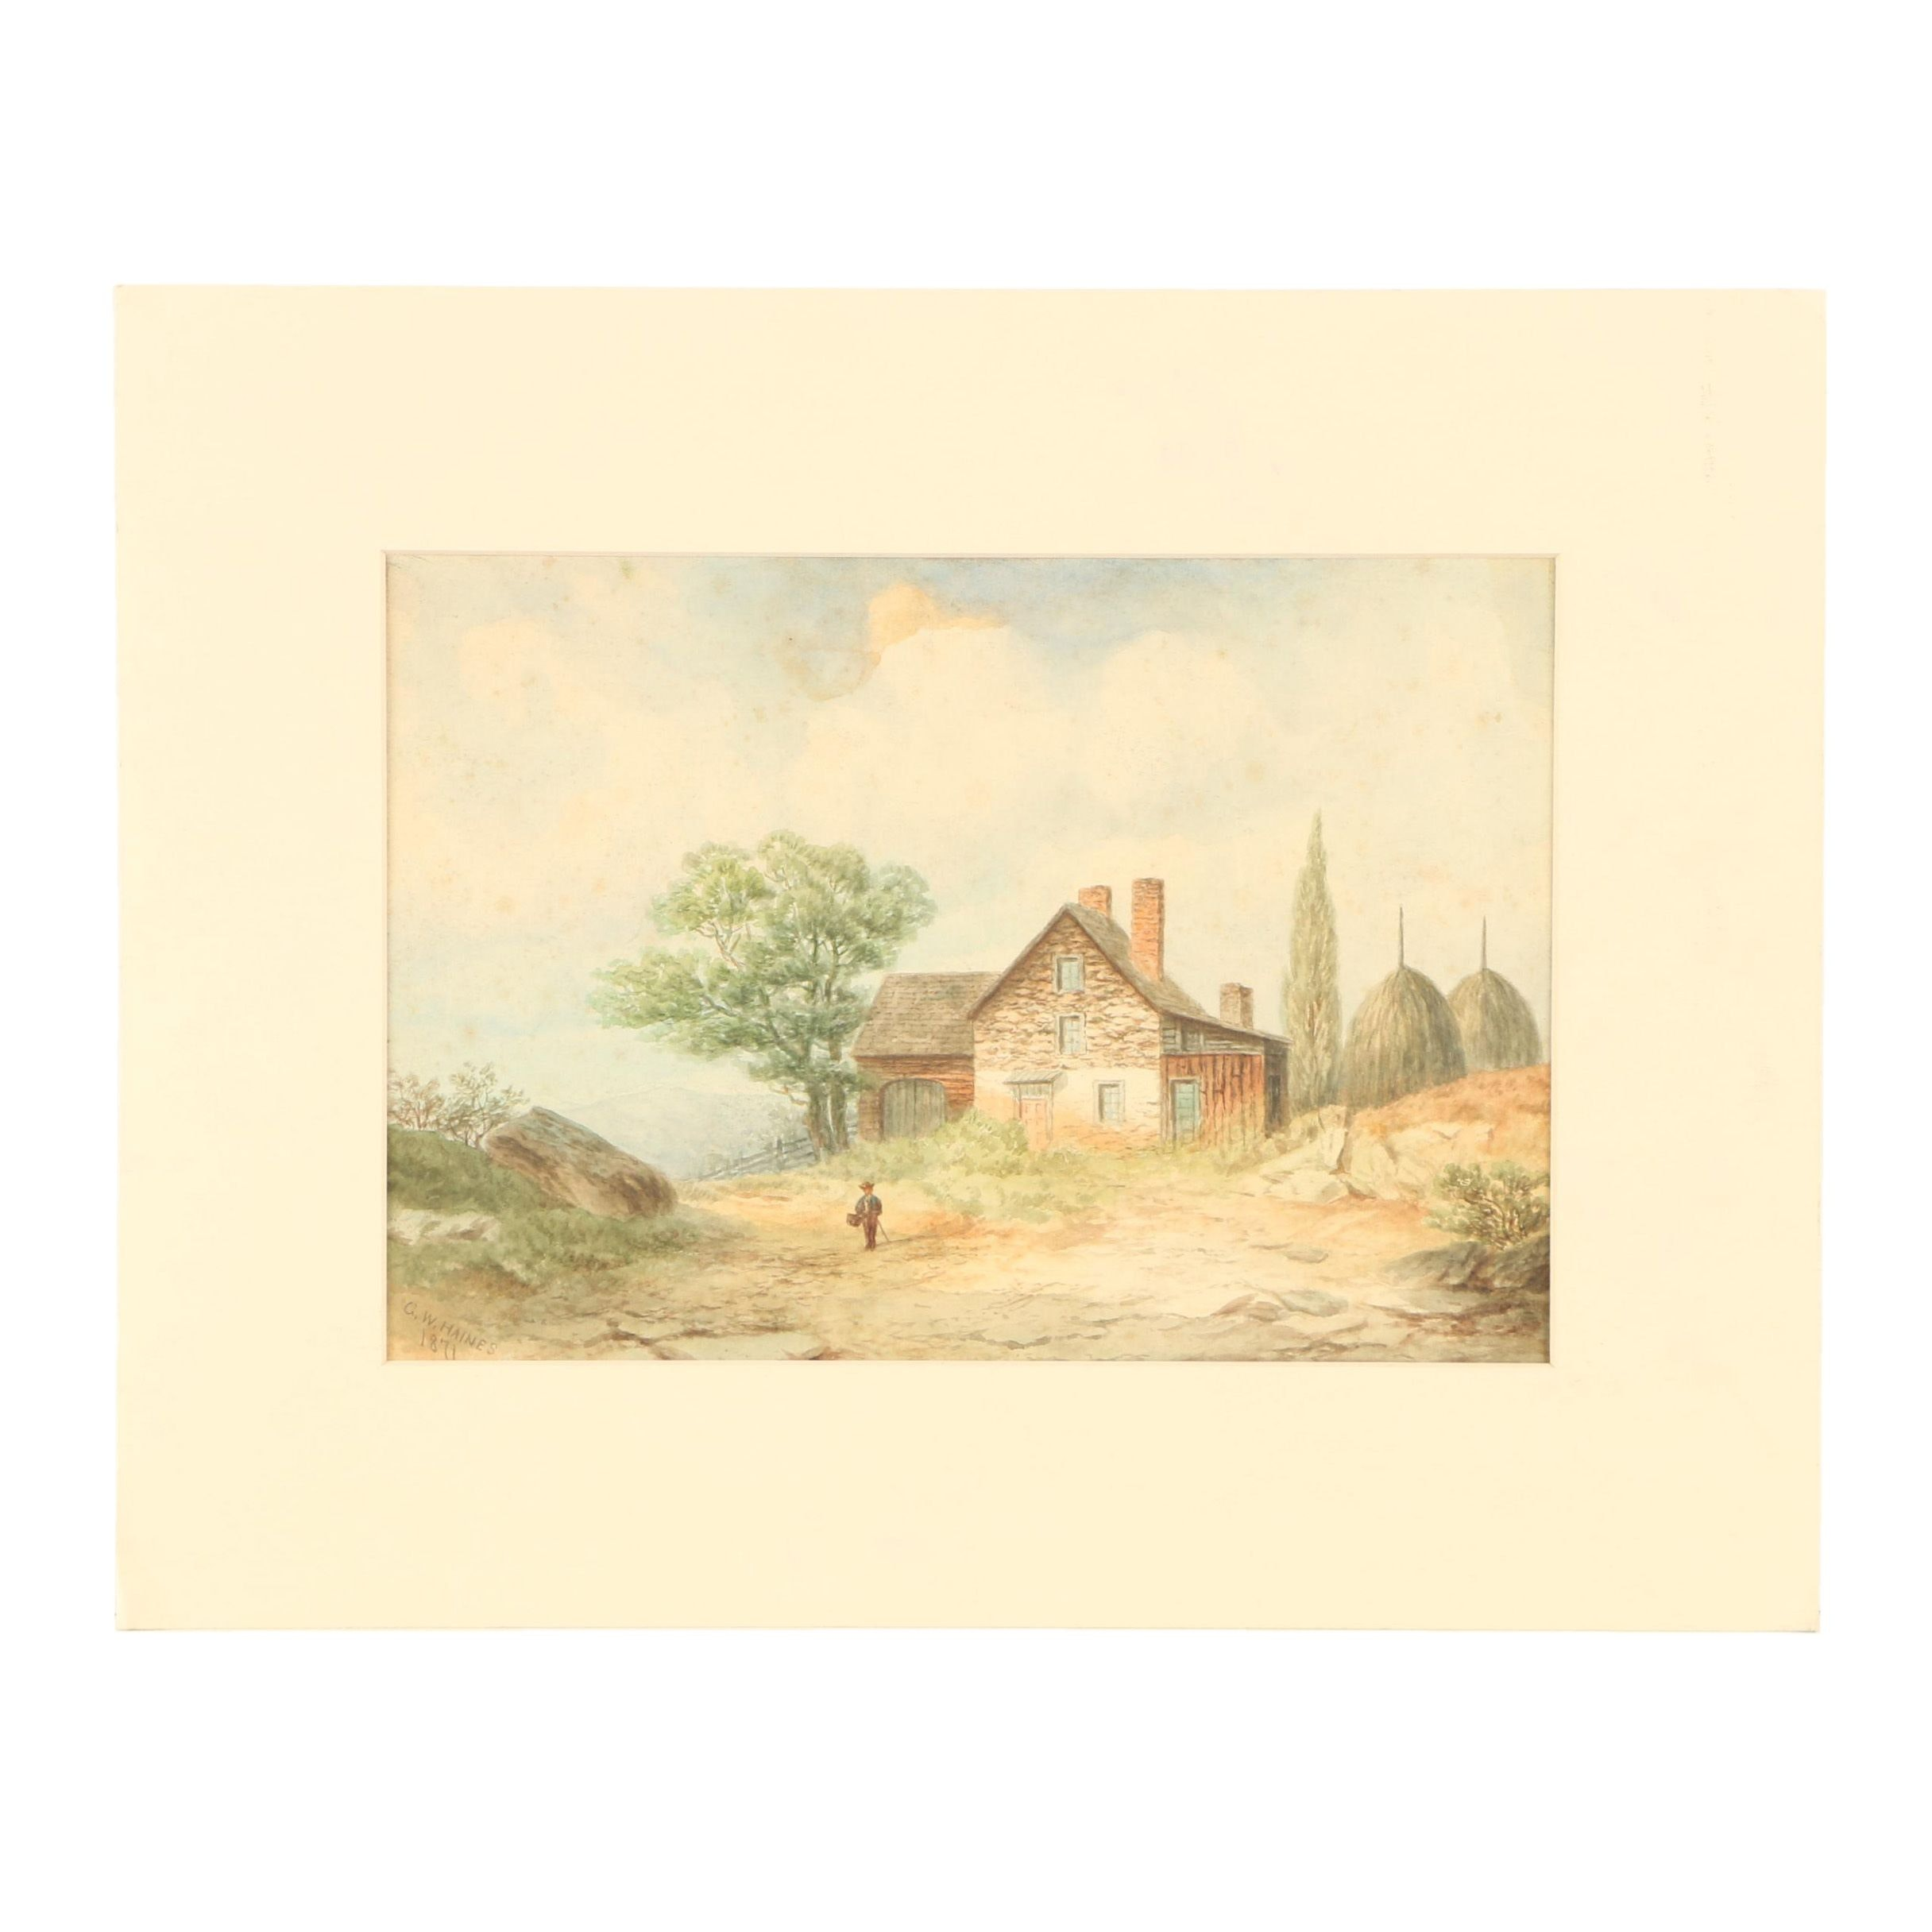 George W. Haines 1871 Watercolor Painting of European Farm Landscape Scene